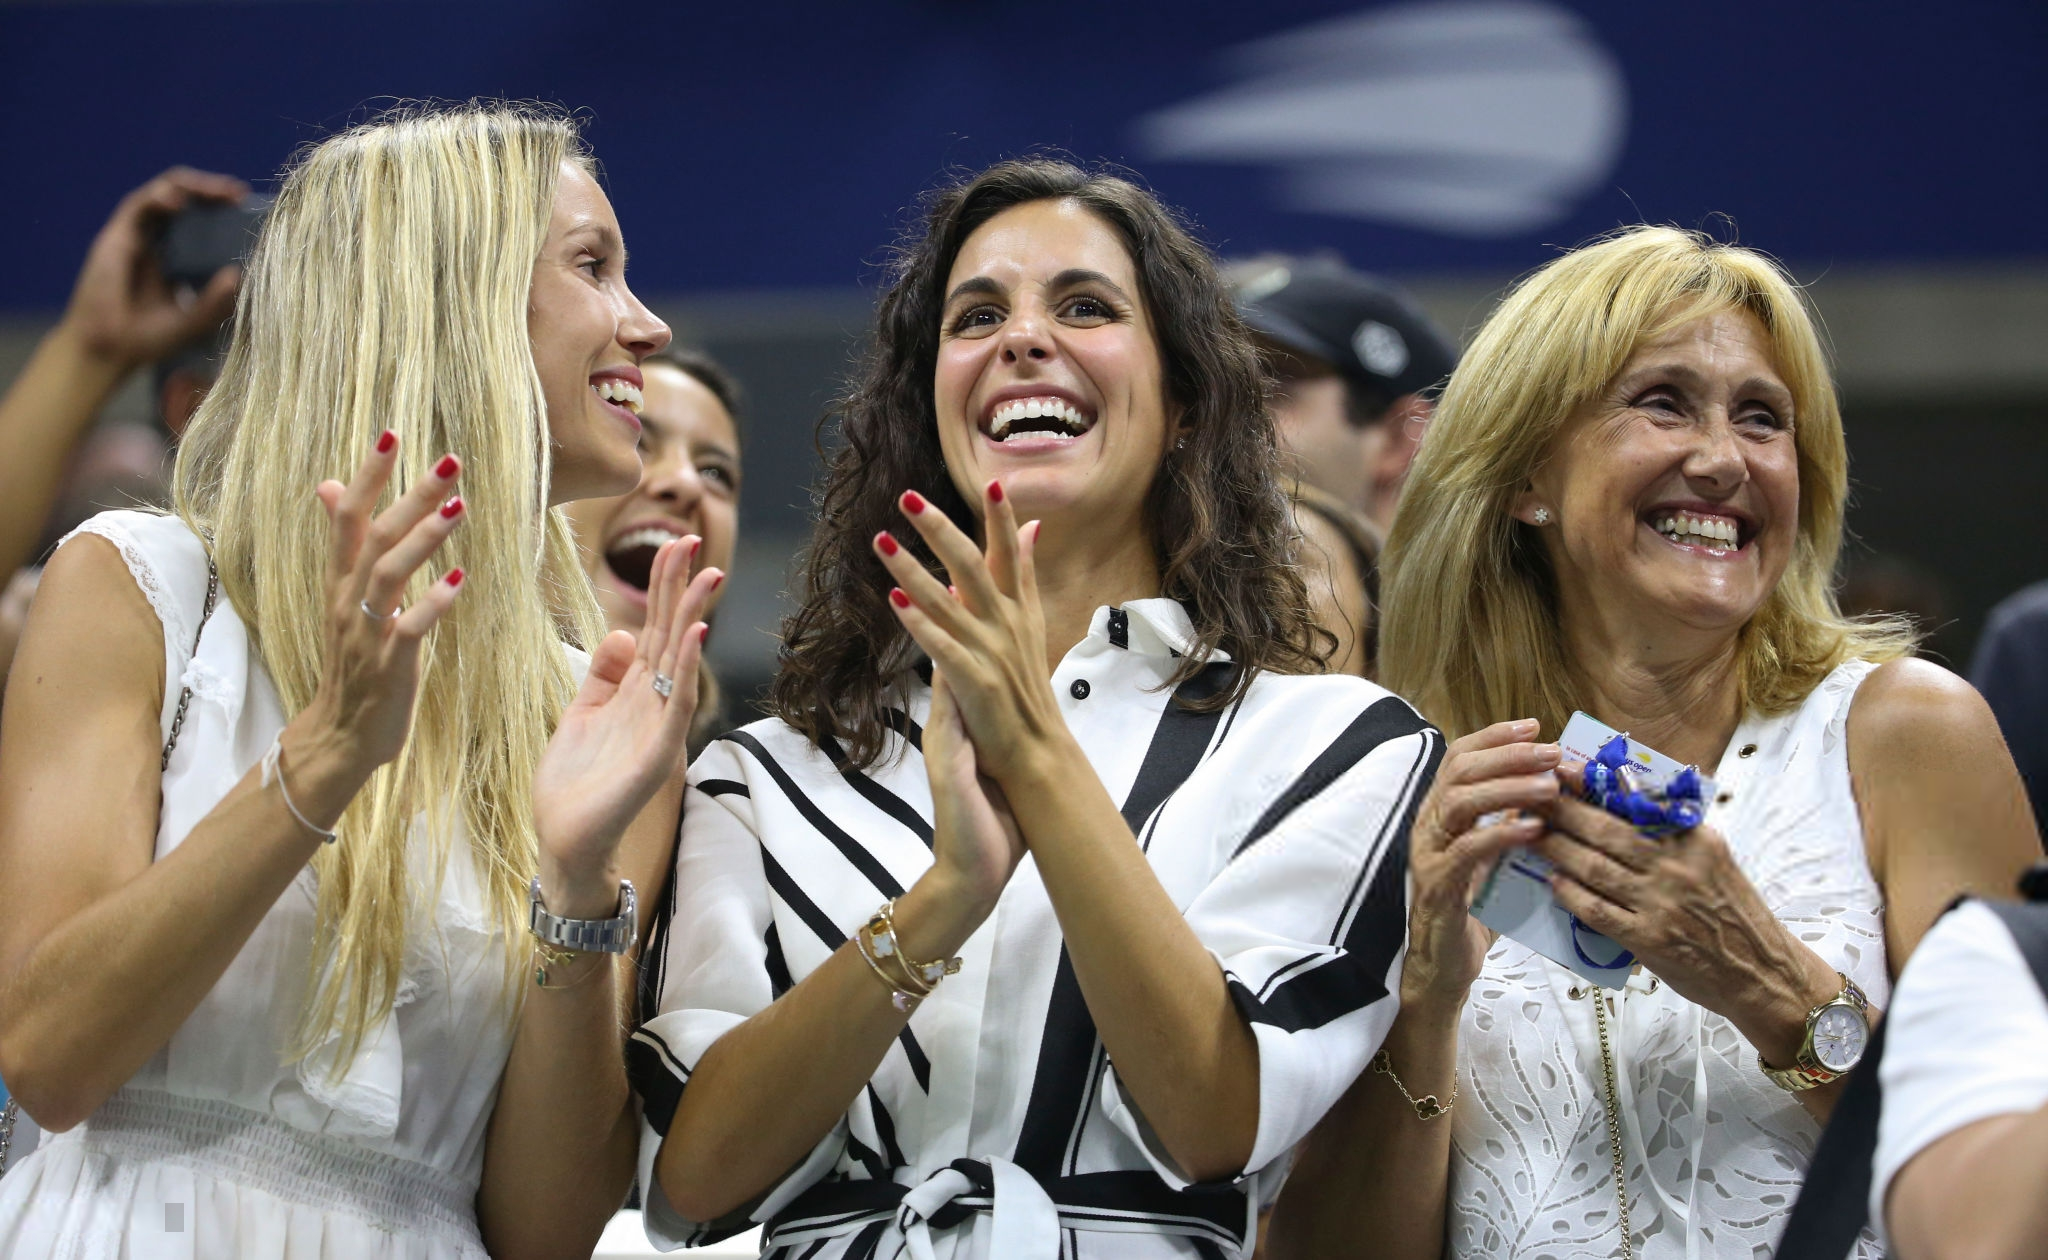 rafael nadal girlfriend sister and mother at us open 2018